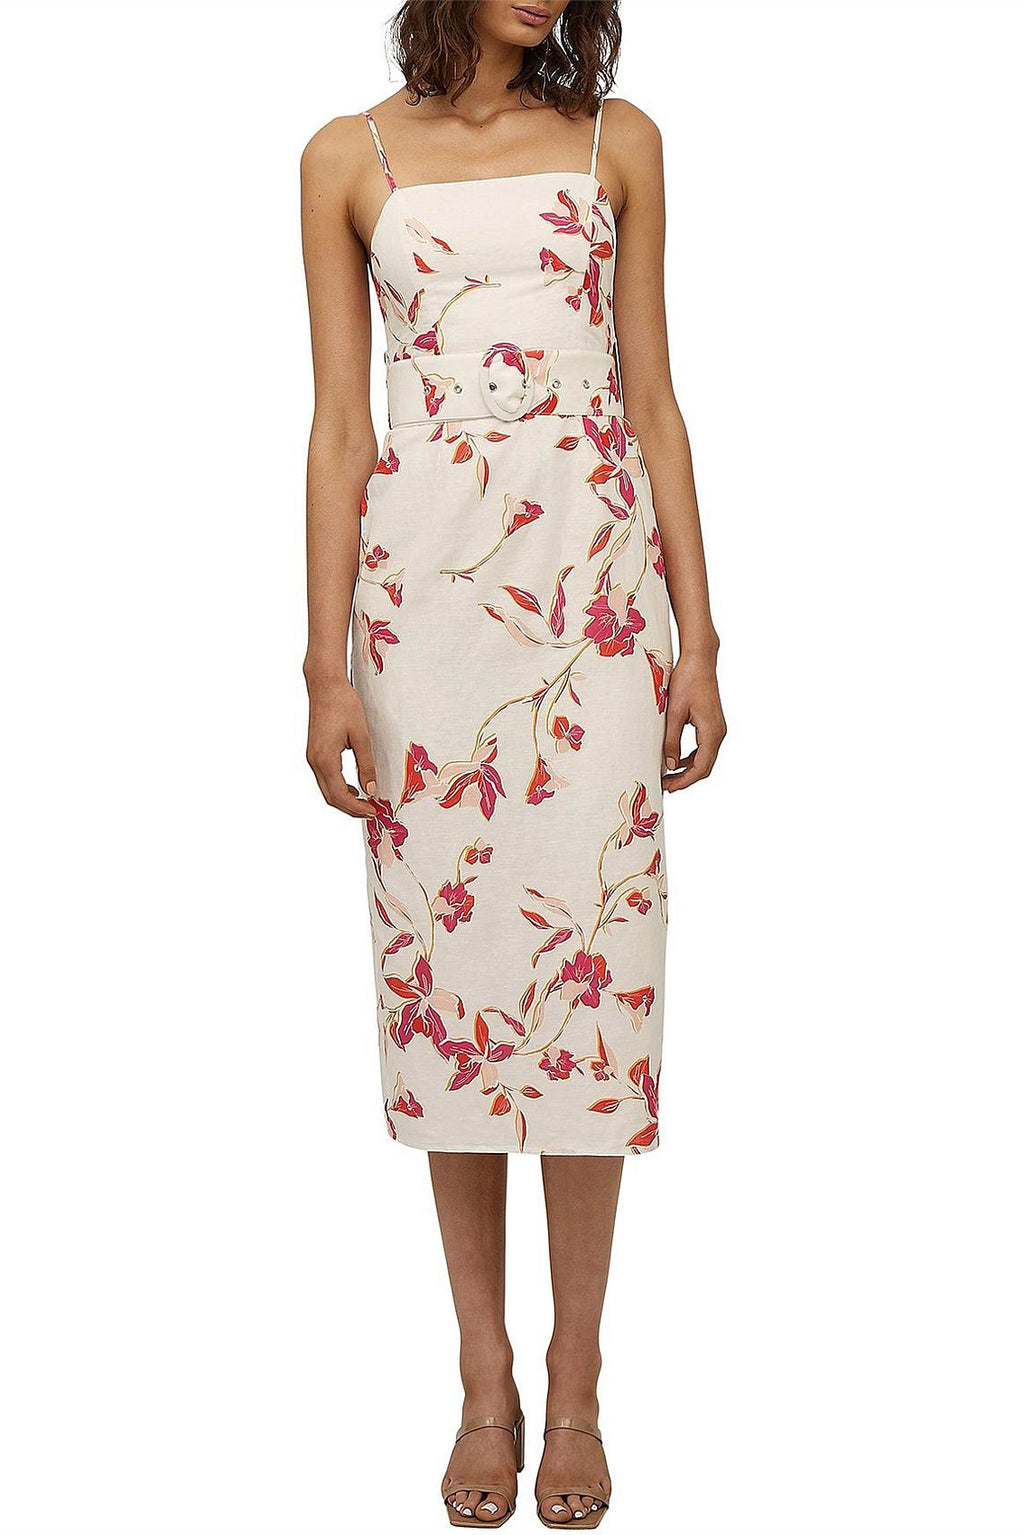 Steele Amalia Dress in Palawan Floral